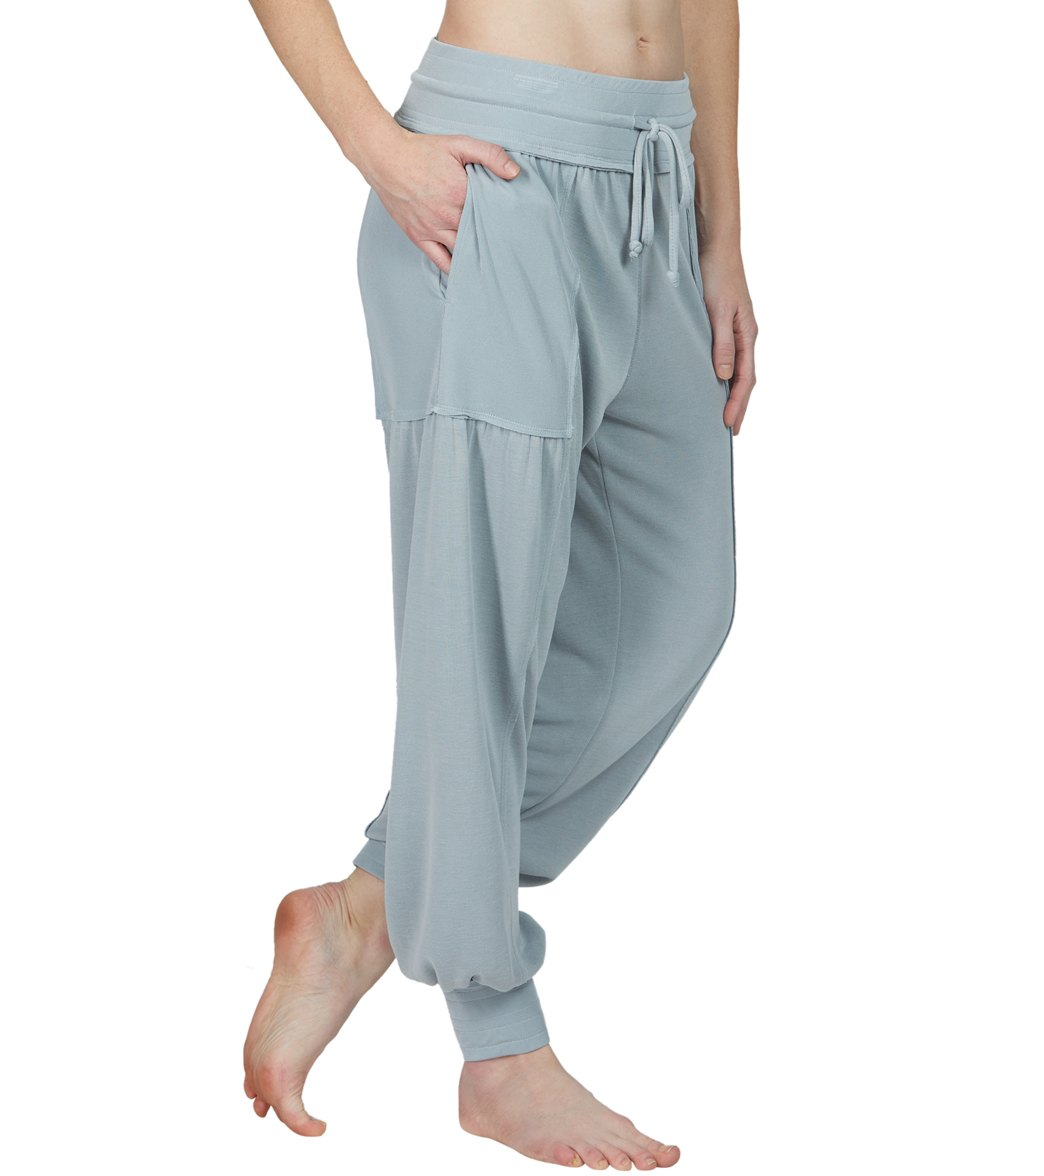 f4f9780977aa4 Free People Scorpio Joggers at YogaOutlet.com - Free Shipping